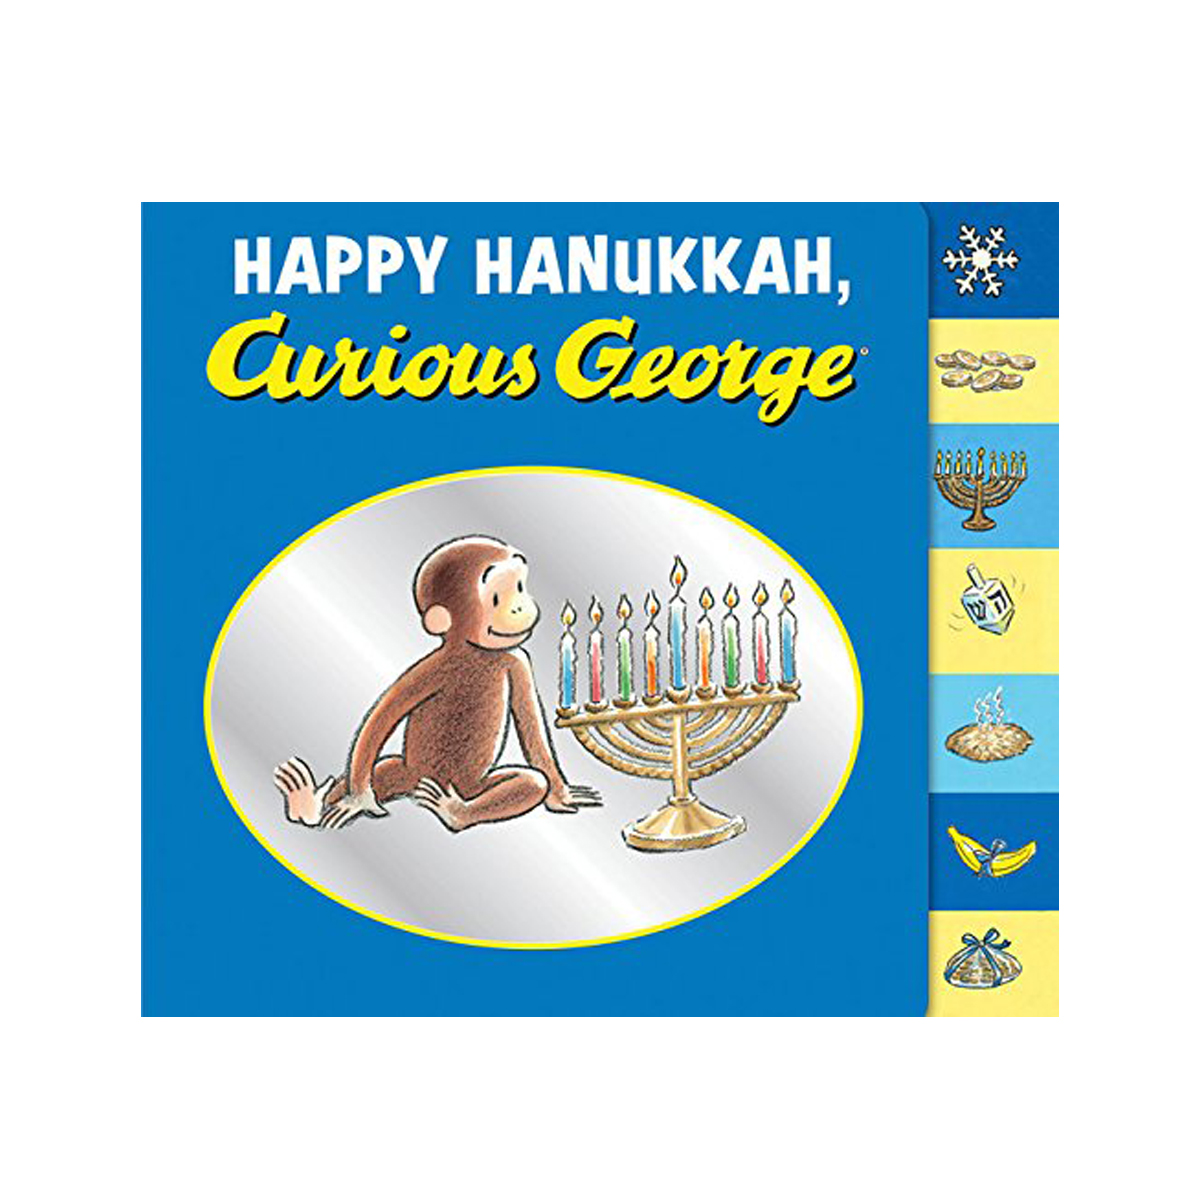 Tiny Bee Gift Co Happy Hanukkah, Curious George